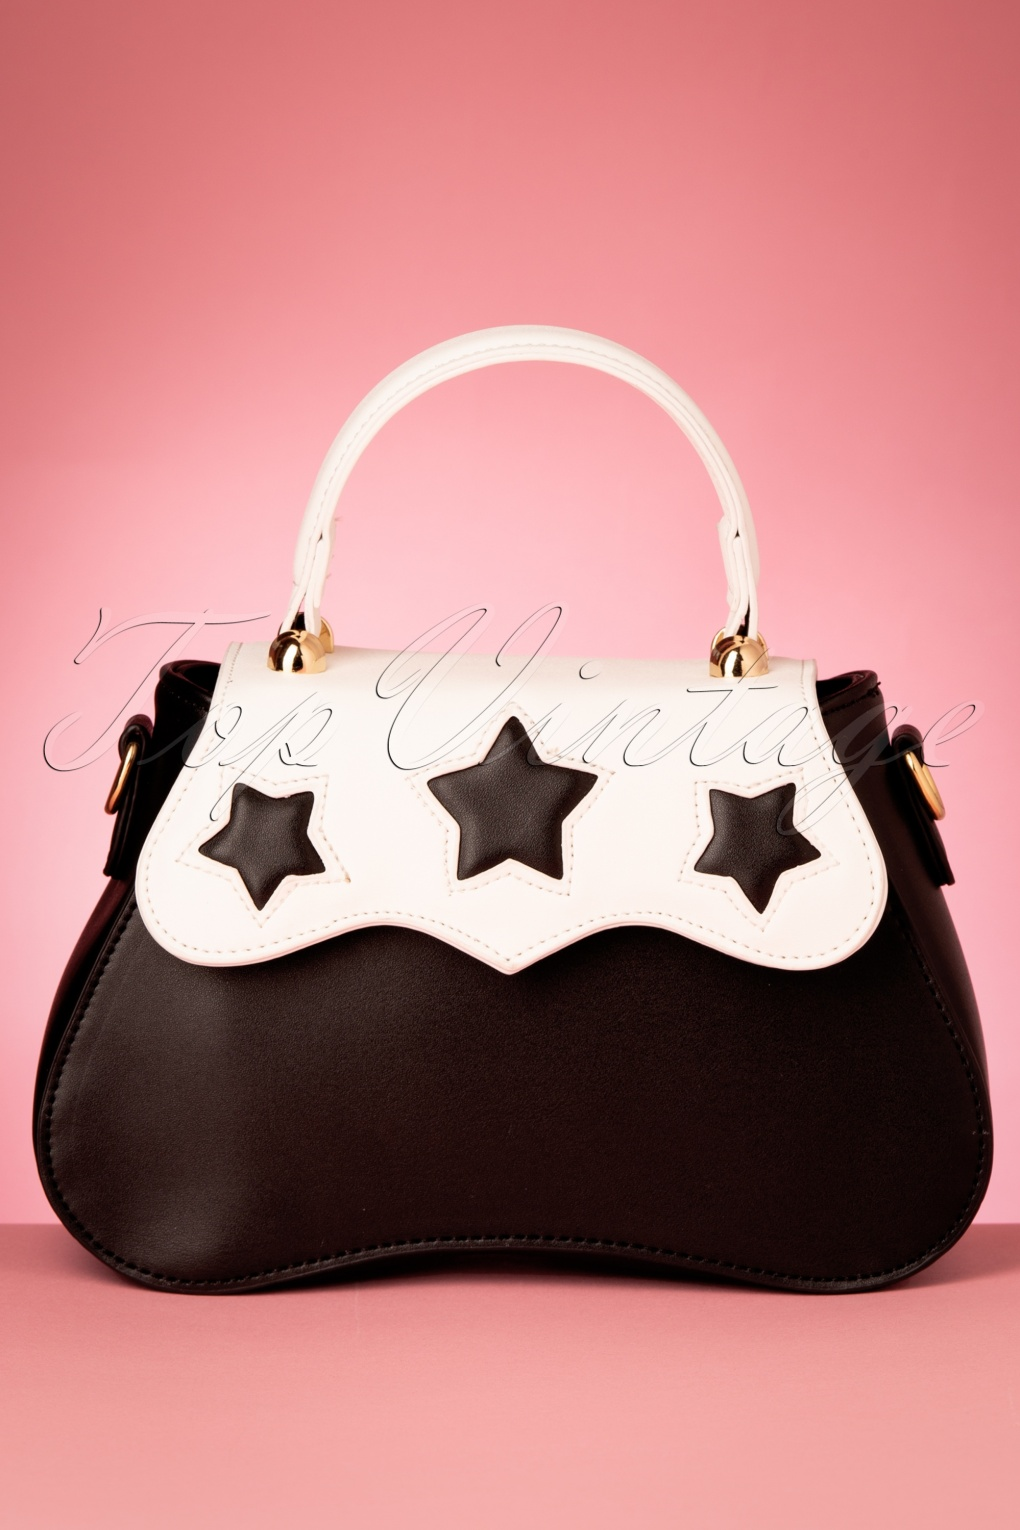 1950s Handbags, Purses, and Evening Bag Styles 50s Sonia Star Bag in Black and White £23.63 AT vintagedancer.com